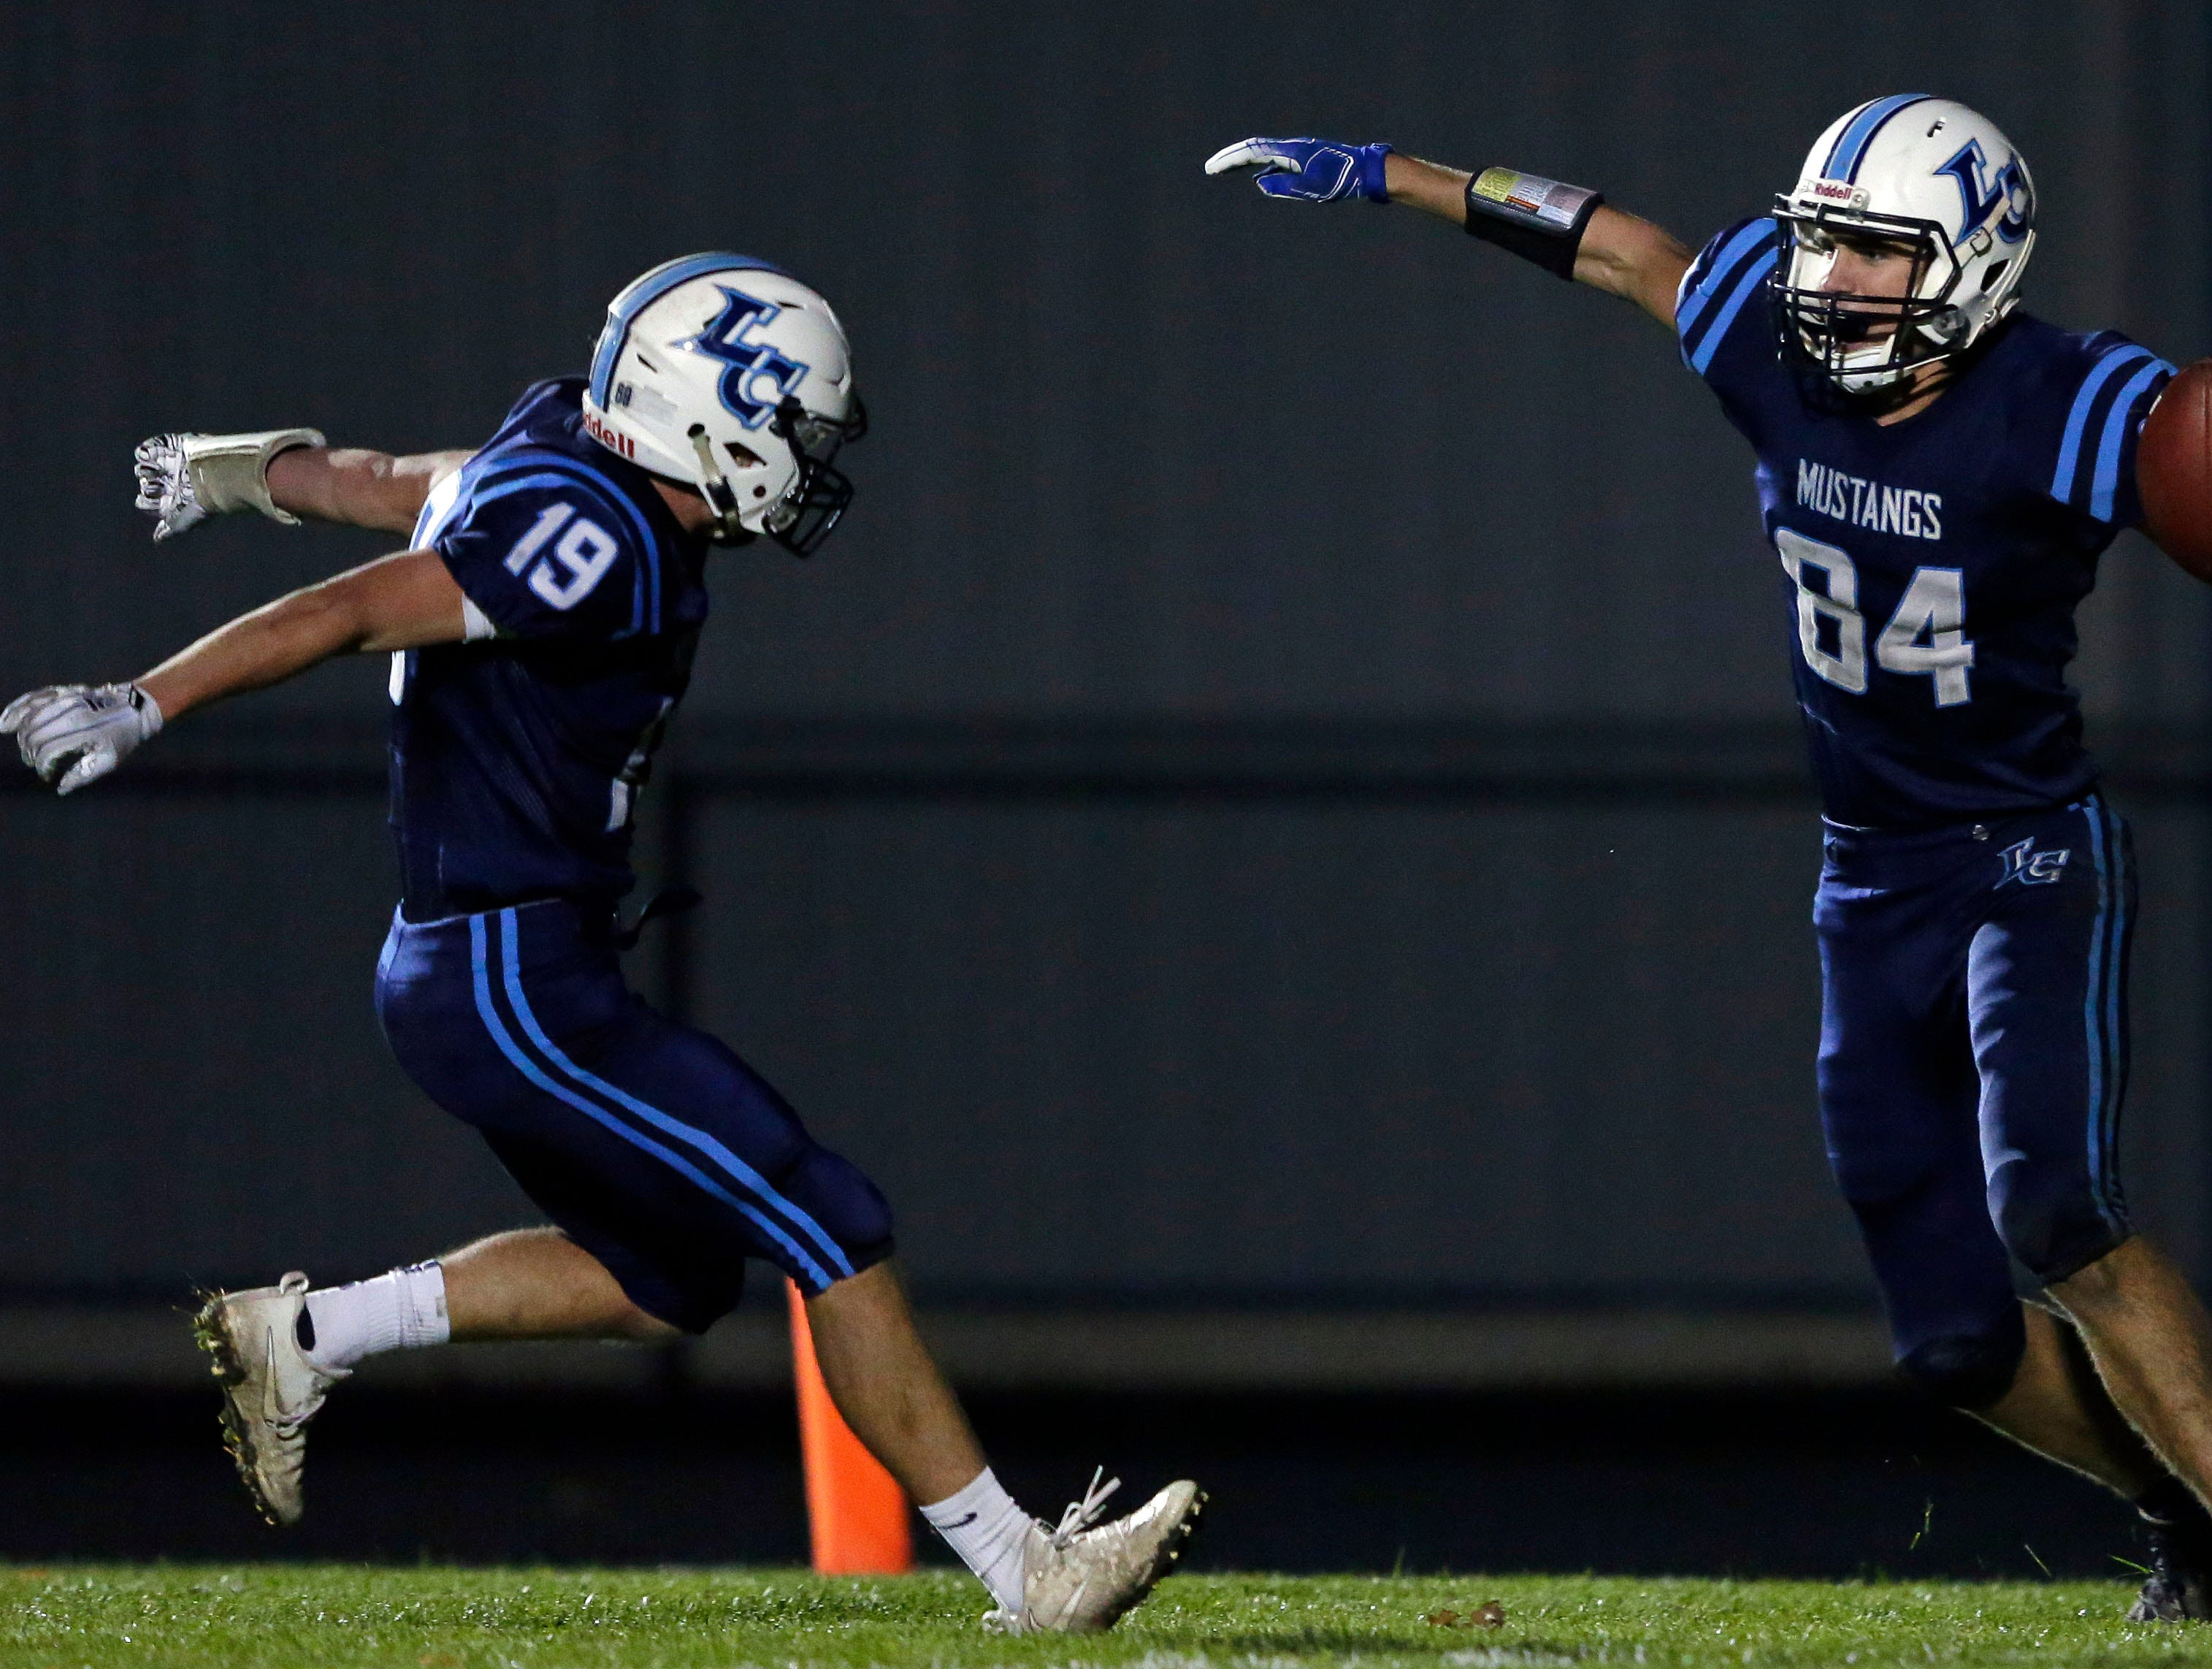 Jacob Lillge (left) of Little Chute celebrates Isiah Boe's touchdown against Chilton in a WIAA Division 4 second round football playoff game Friday, October 26, 2018, at Little Chute High School in Little Chute, Wis.Ron Page/USA TODAY NETWORK-Wisconsin